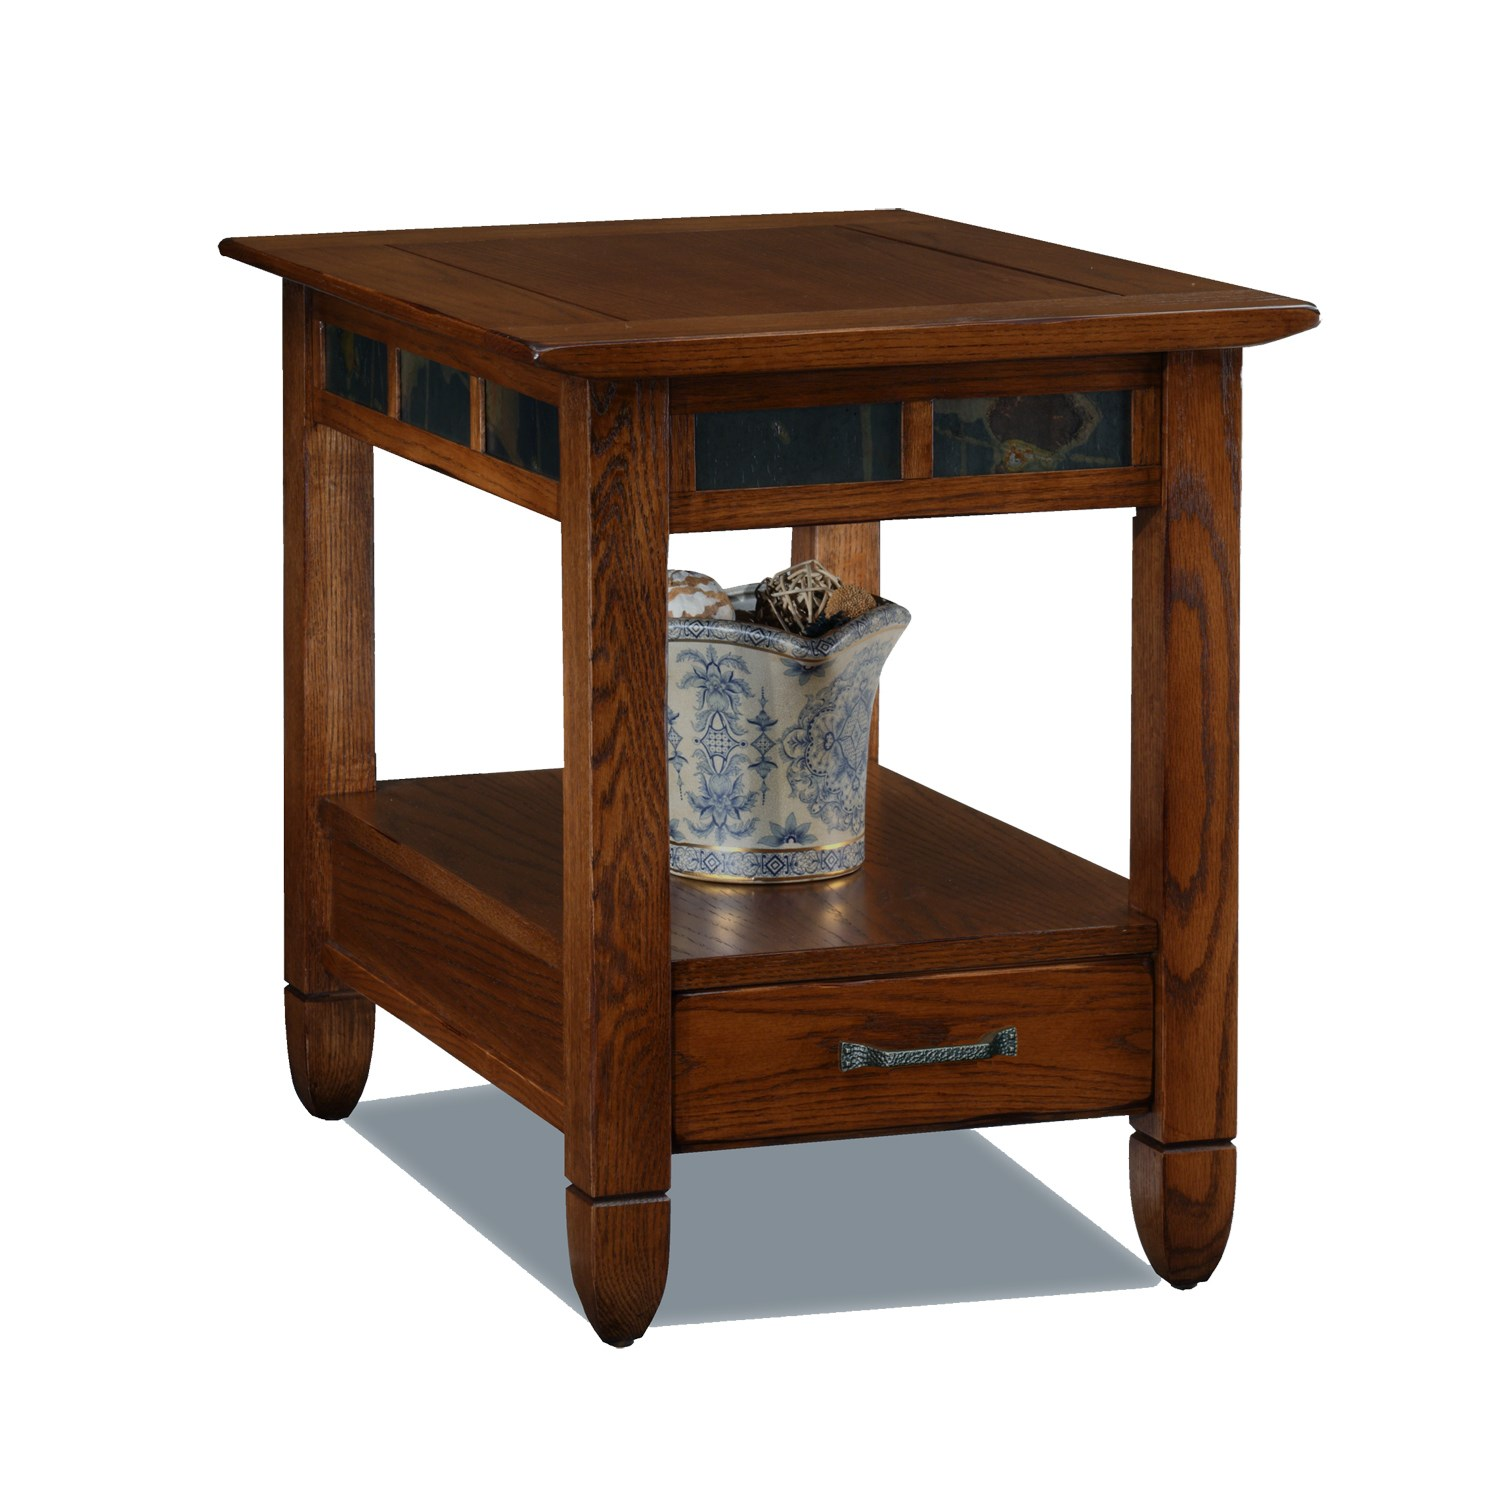 rustic accent table tables leick home slatestone end oak corner skinny wine rack target changing patio furniture ottawa pottery barn sofa narrow entry with drawers wood and glass